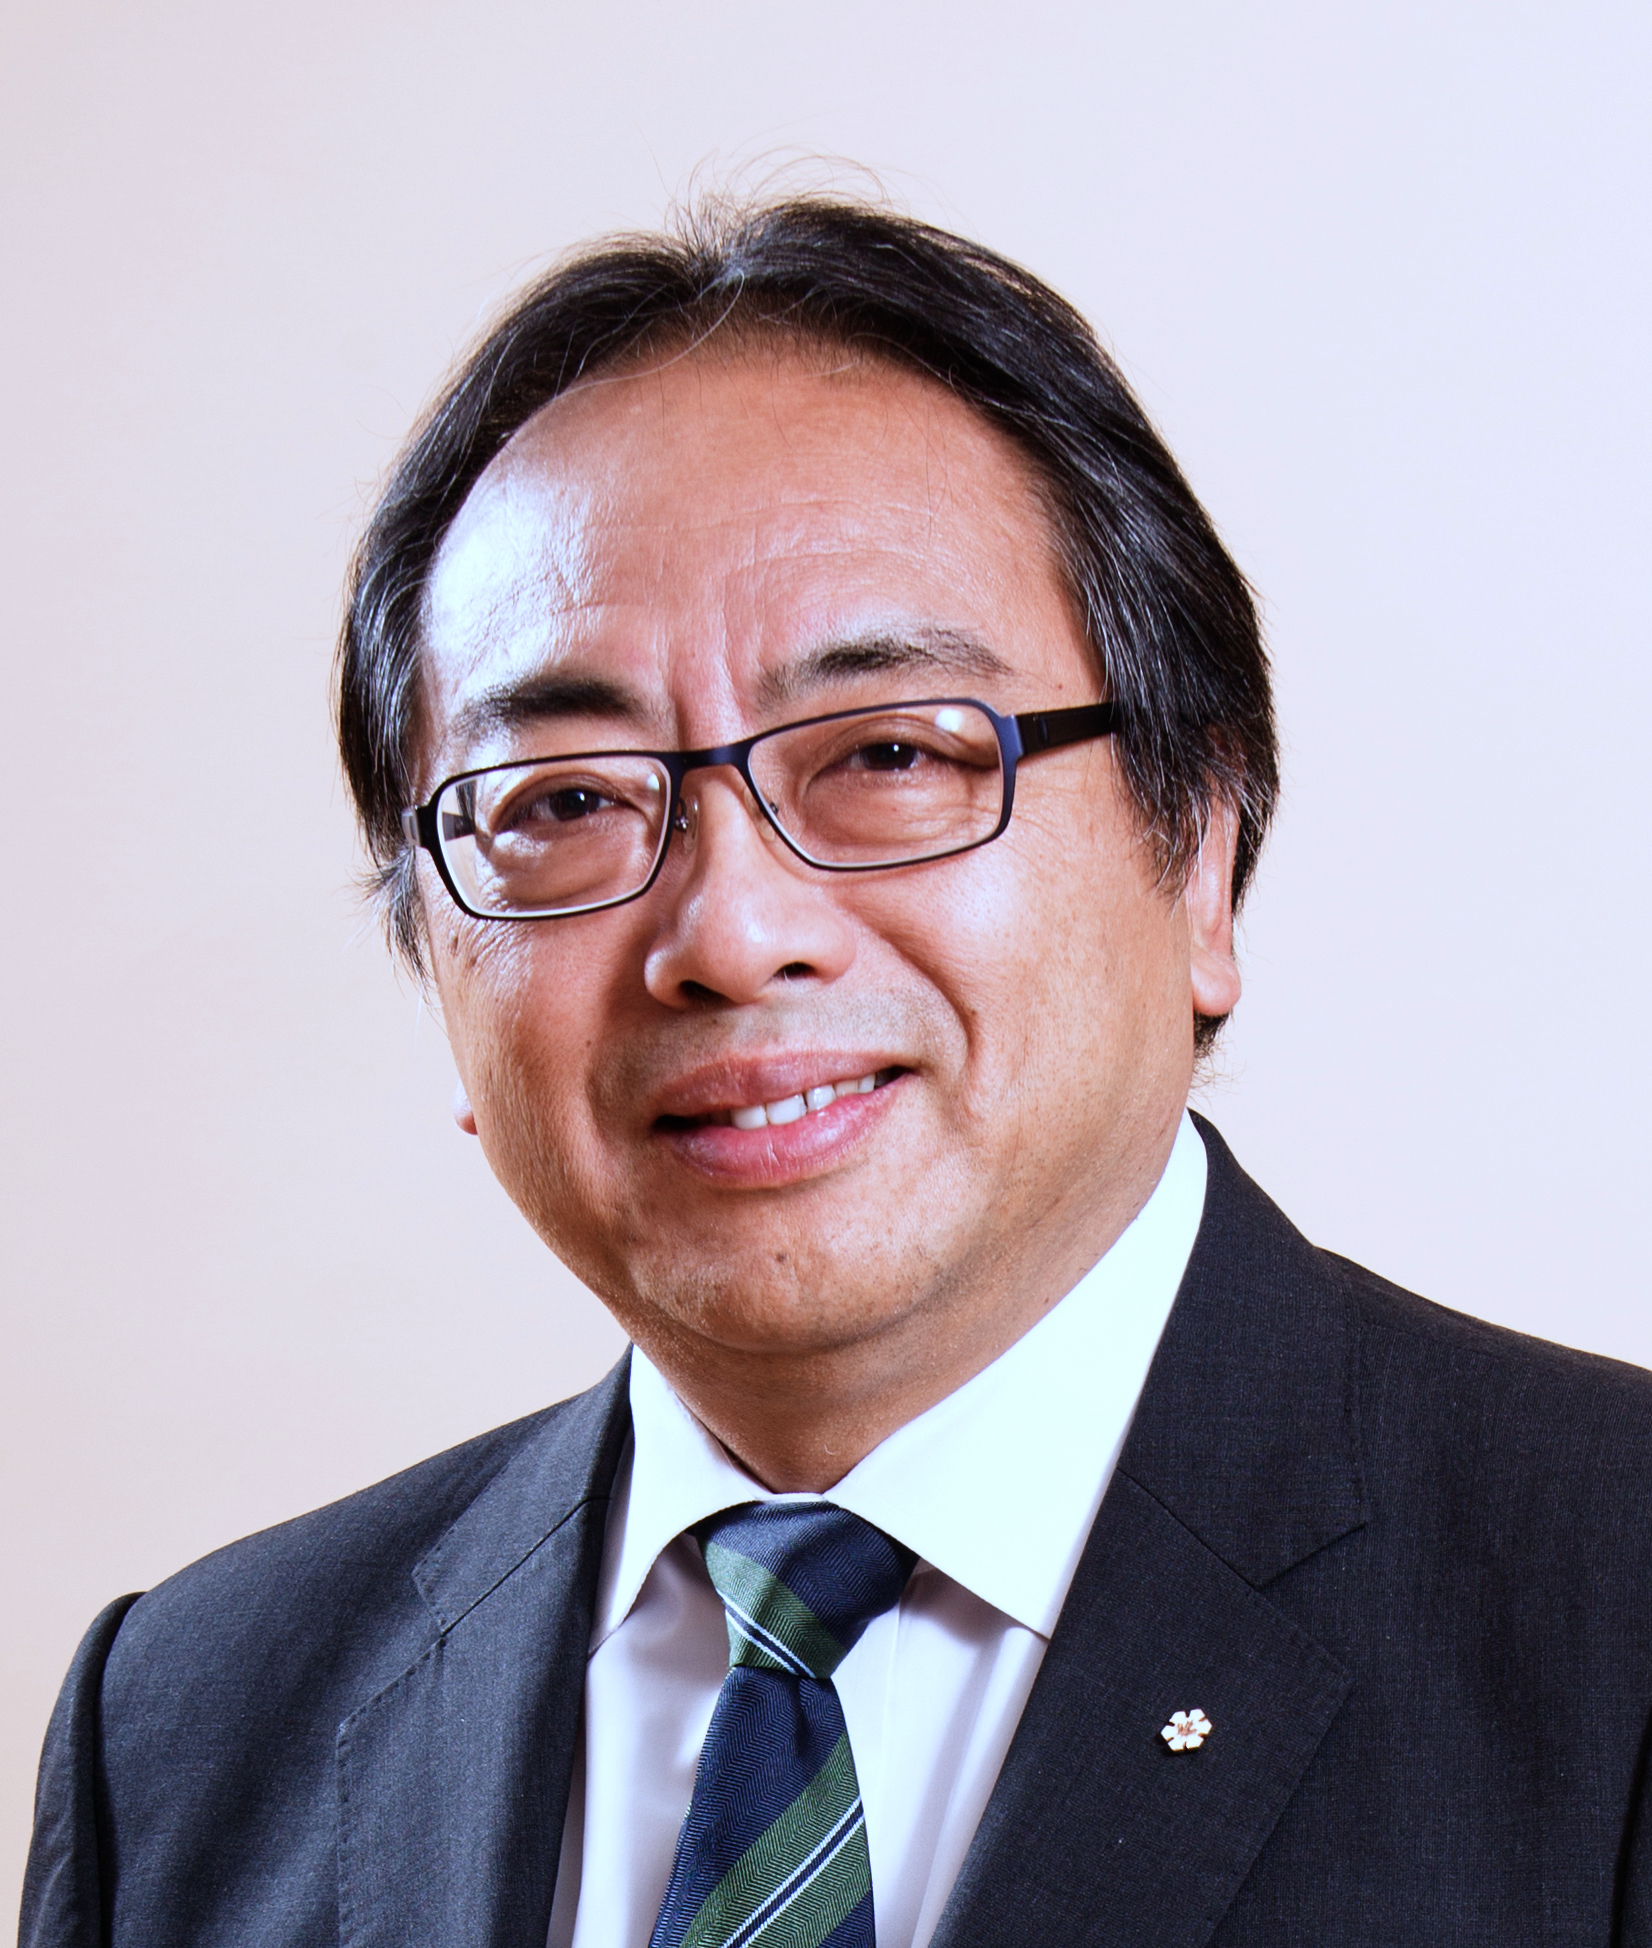 Our Founding President, Prof Lap-Chee Tsui, has been awarded the 2018 Warren Alpert Foundation Prize in recognition of his identification of the cystic fibrosis gene.